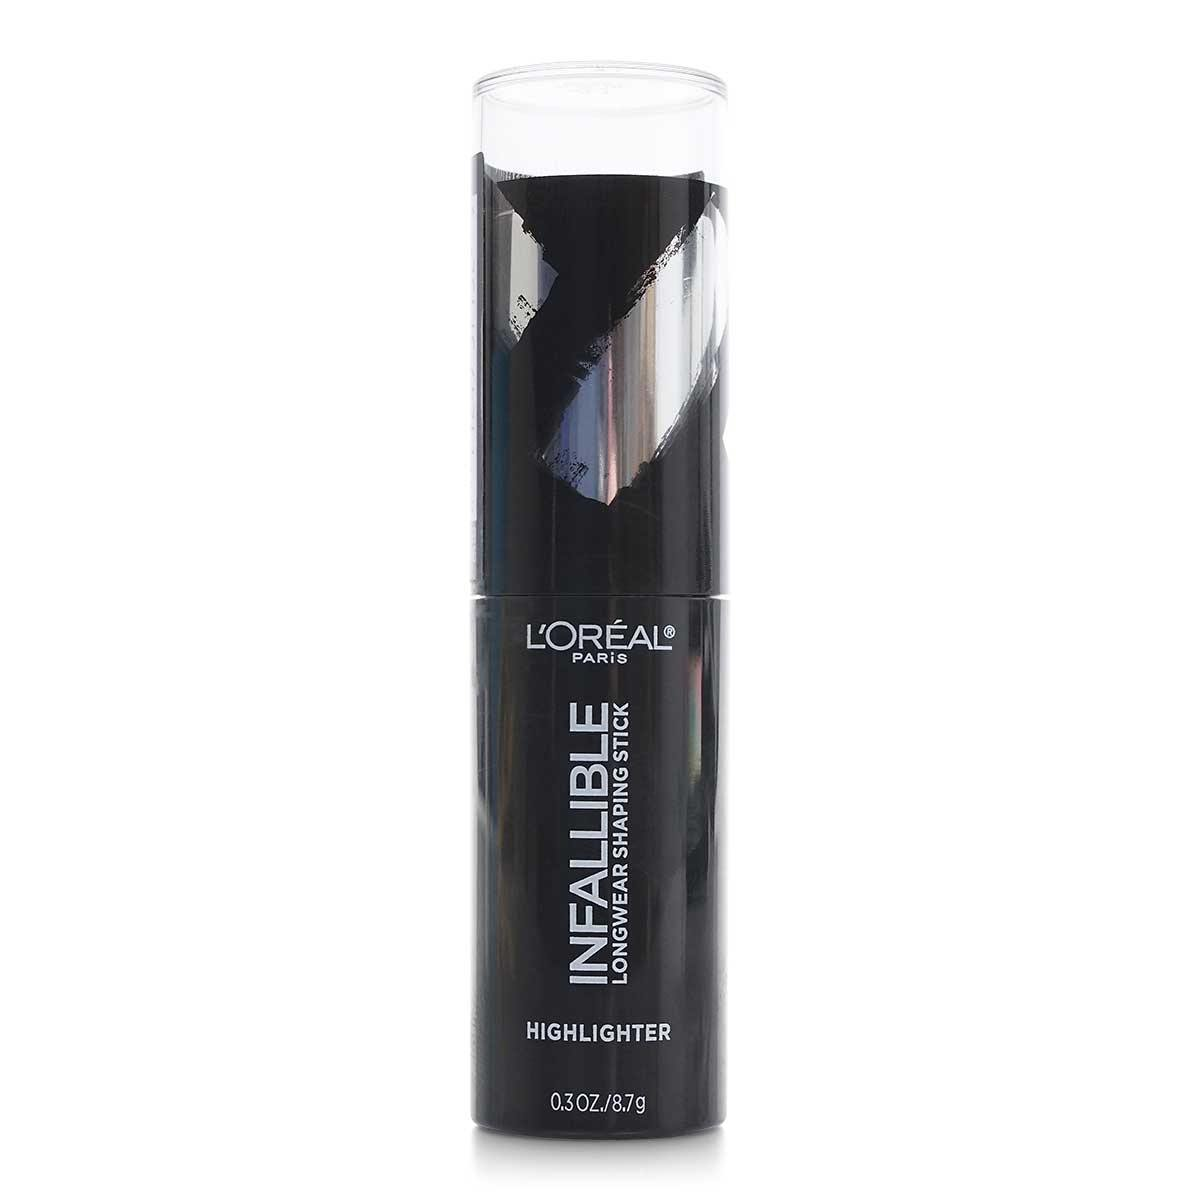 L'Oreal INFALLIBLE PRO HIGHLIGHT STICK (12/cs)